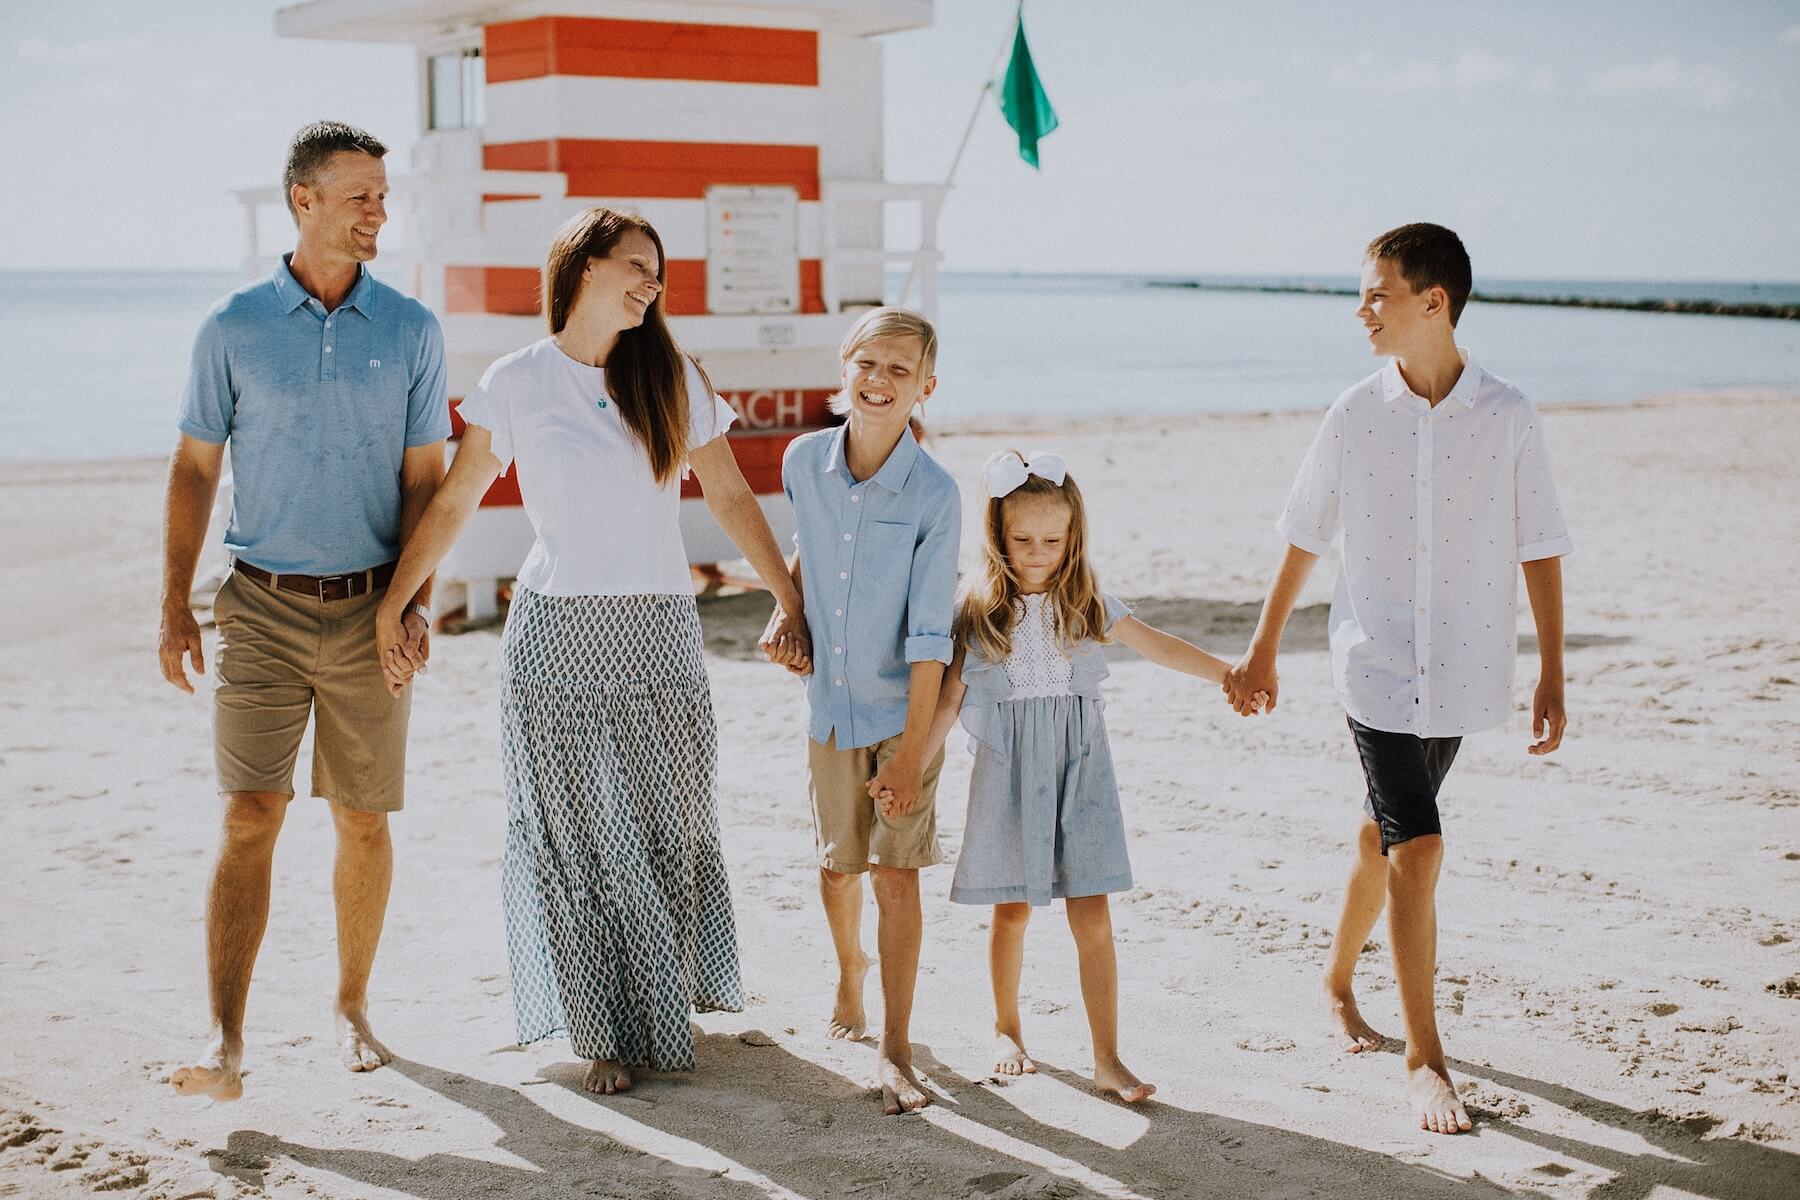 family in front of a colourful lifeguard station in Miami, Florida